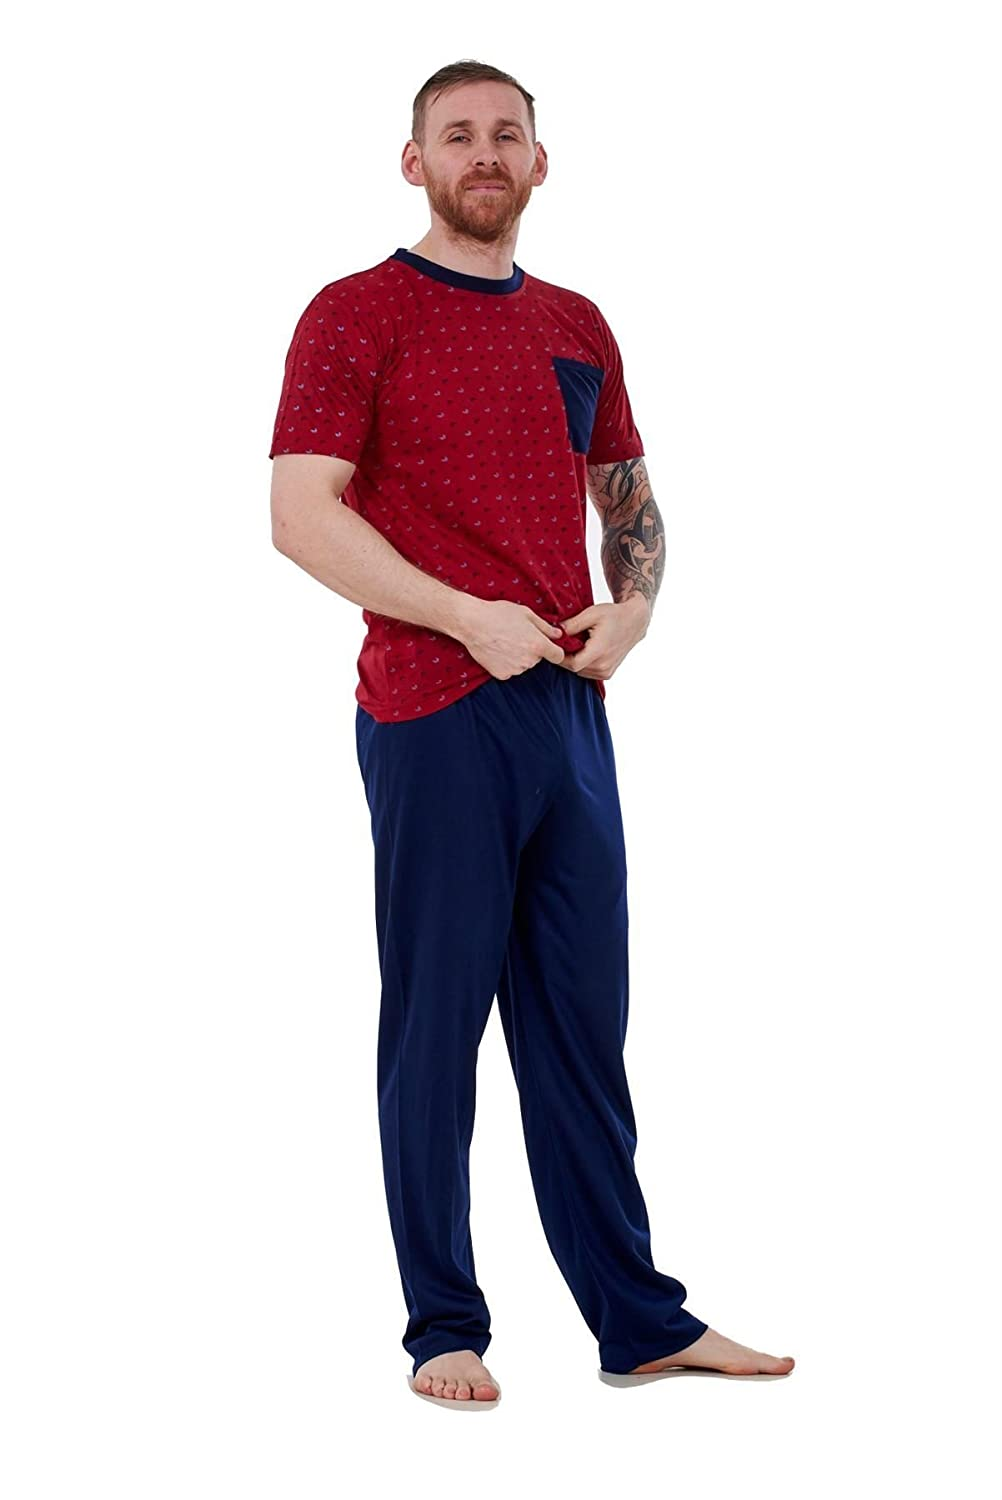 Bay eCom UK Mens Pyjama Sets Jersey Crew Neck Pocket Lounge Sleepwear Soft PJ's M To XXL Does not Apply